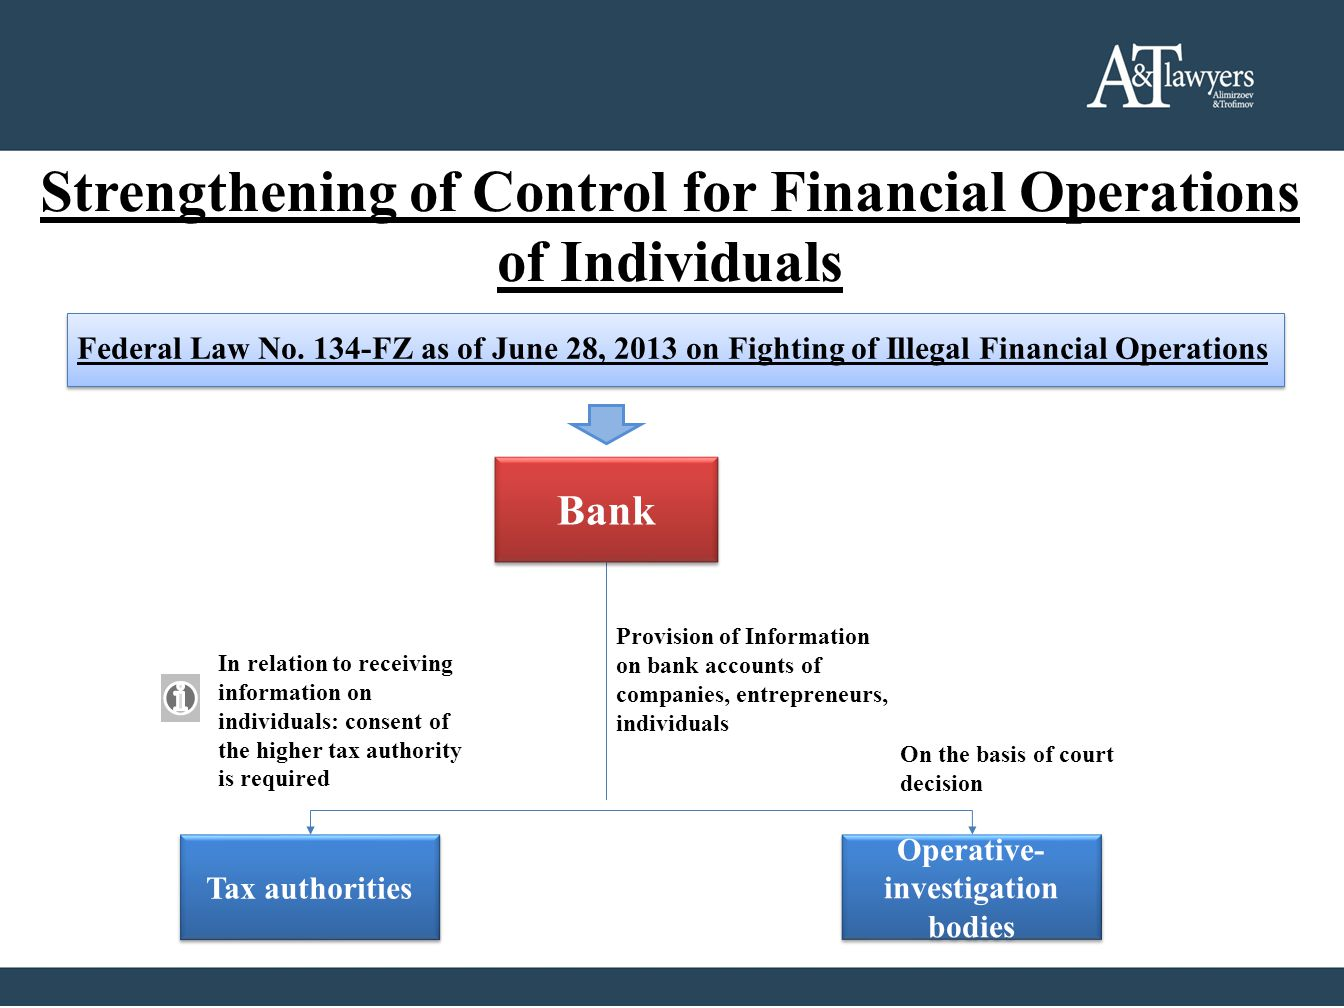 Strengthening of Control for Financial Operations of Individuals Federal Law No. 134-FZ as of June 28, 2013 on Fighting of Illegal Financial Operation